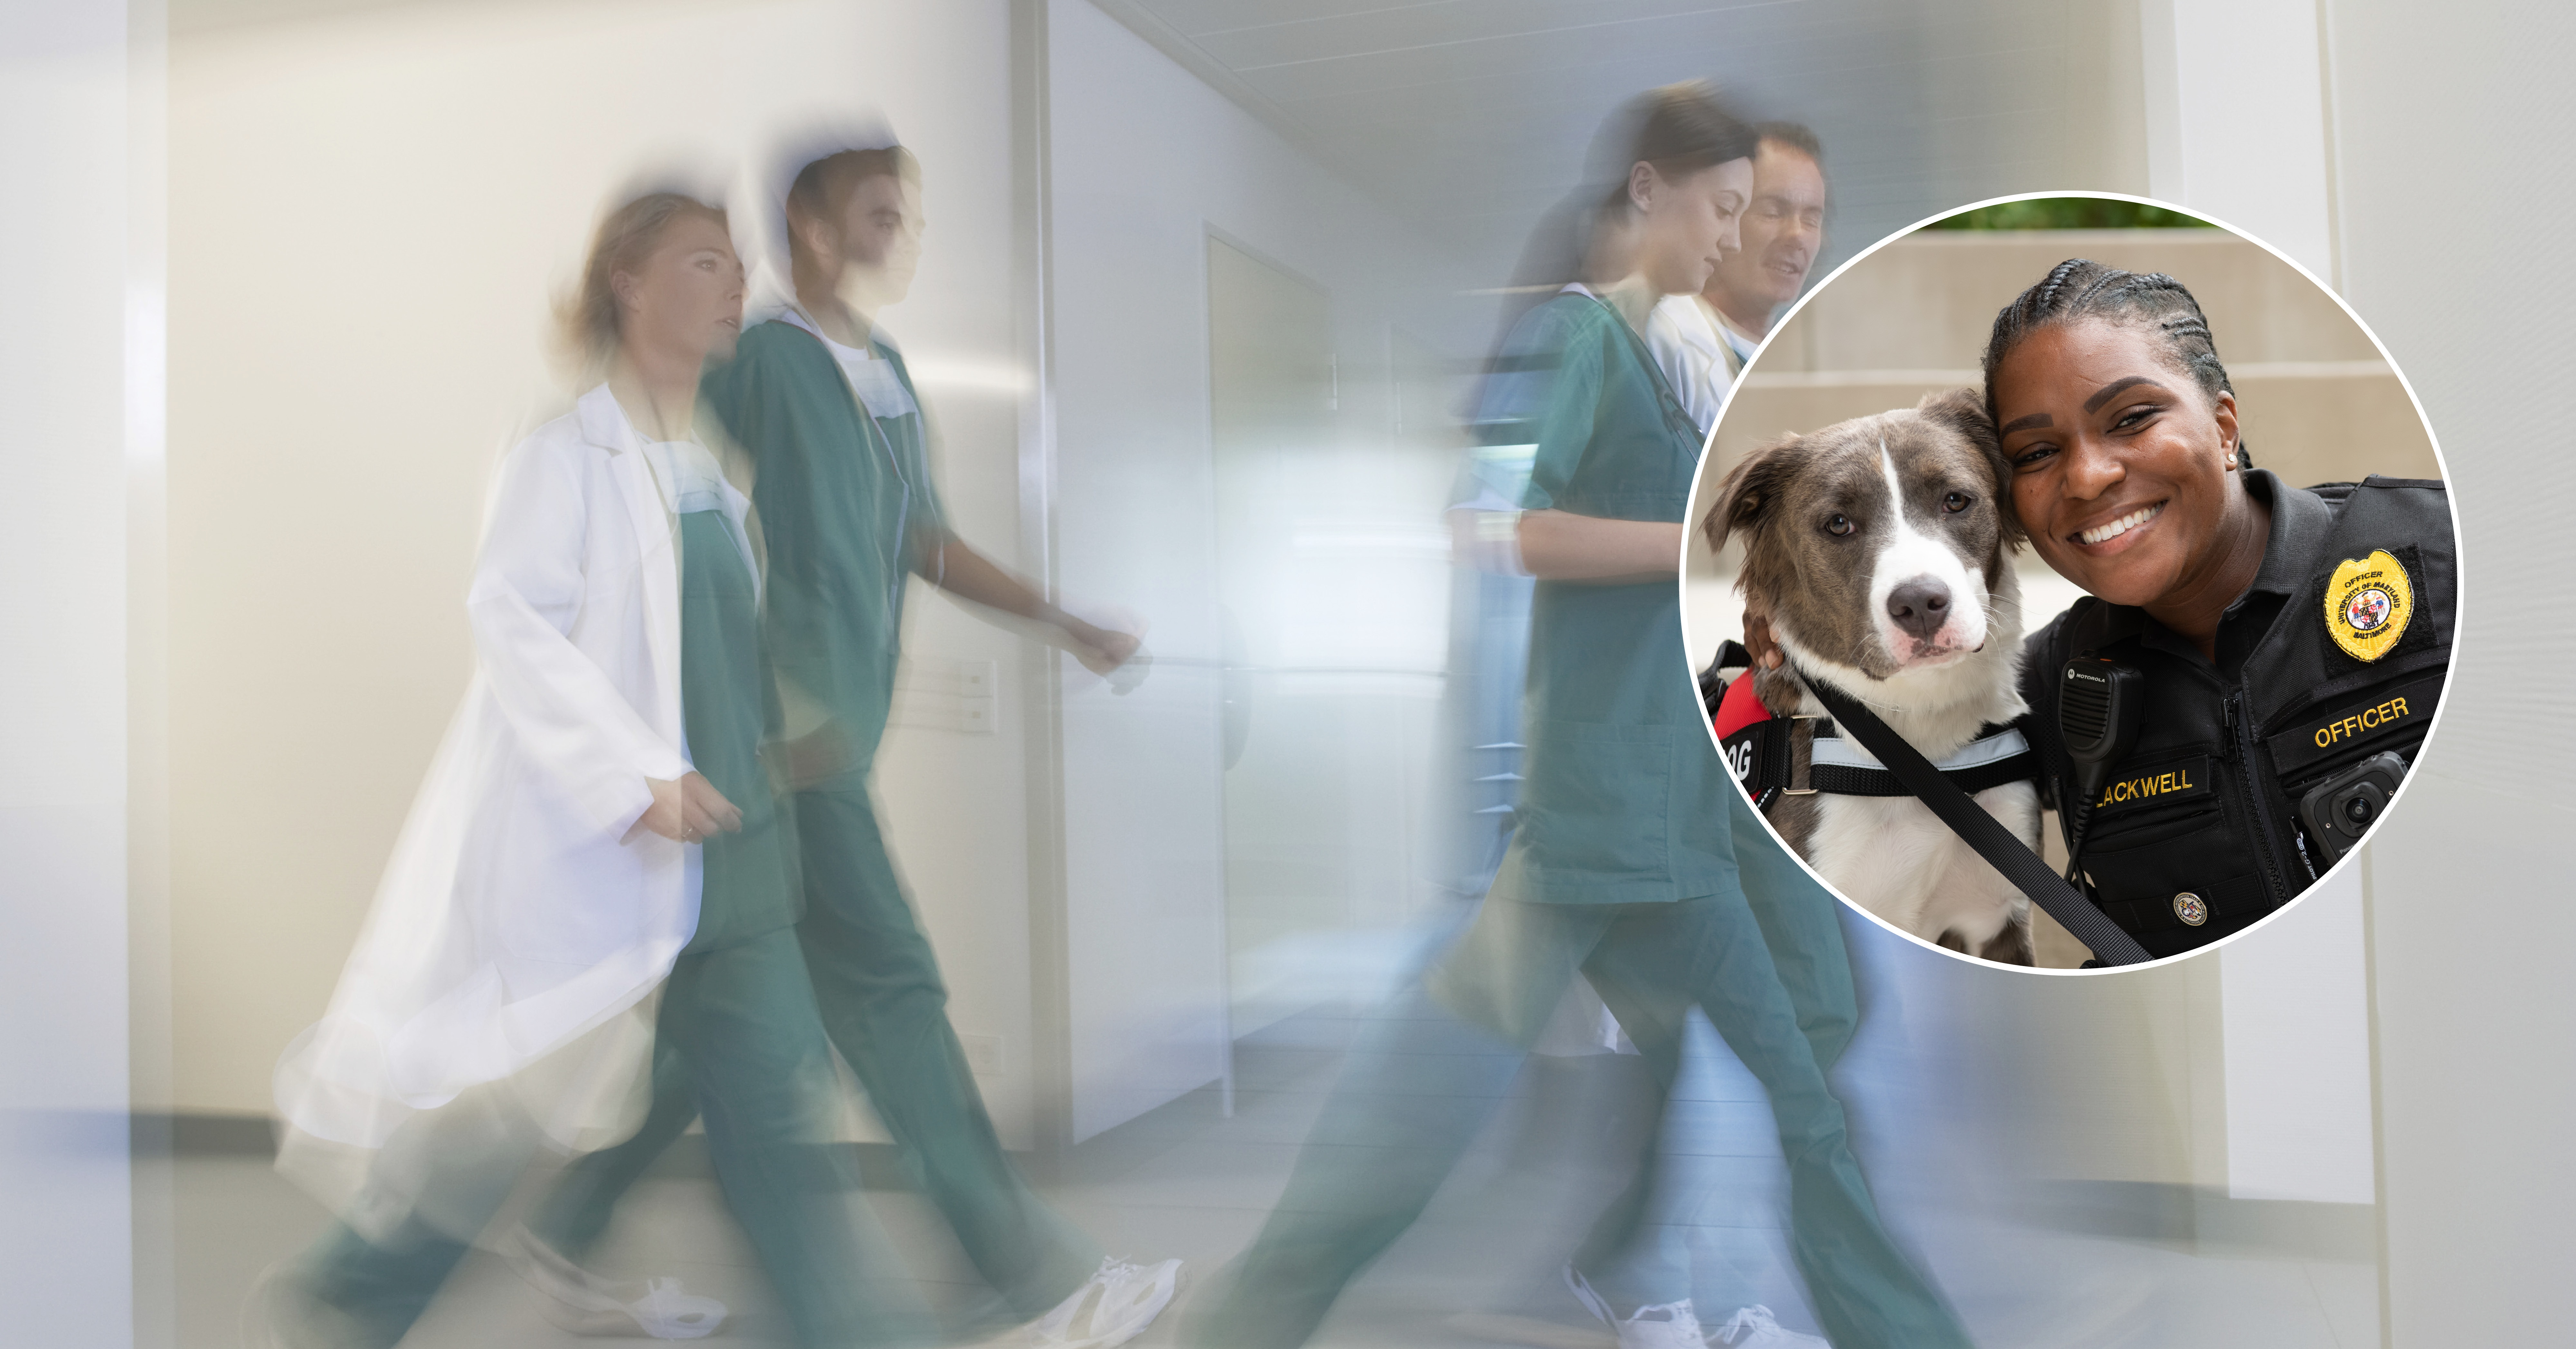 health professionals walking down an isle with side picture of police office and dog